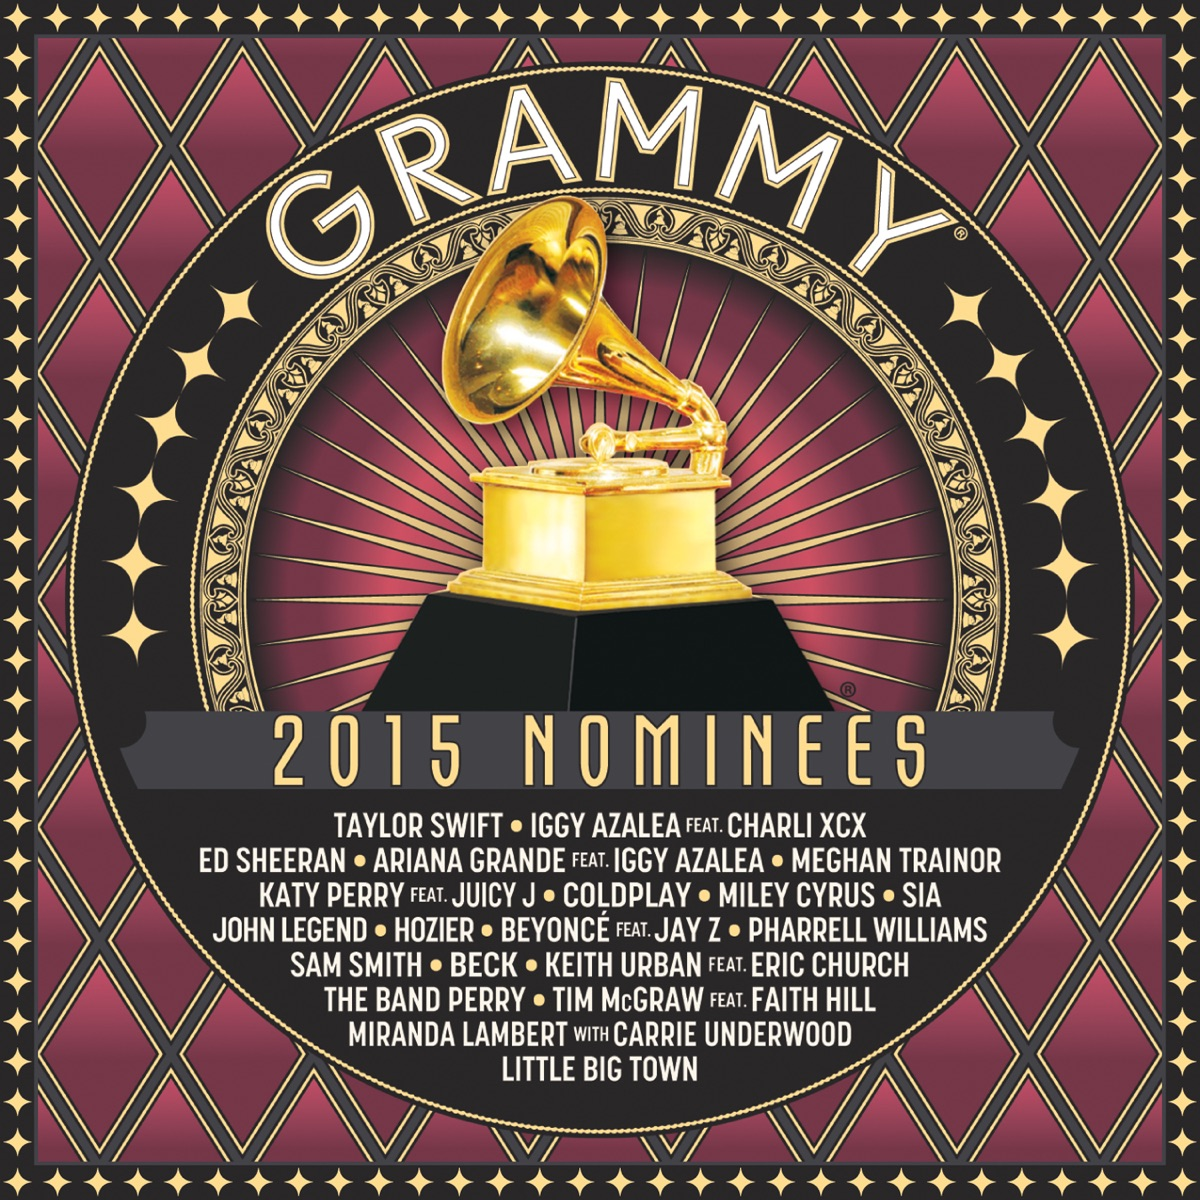 2015 GRAMMY Nominees Various Artists CD cover